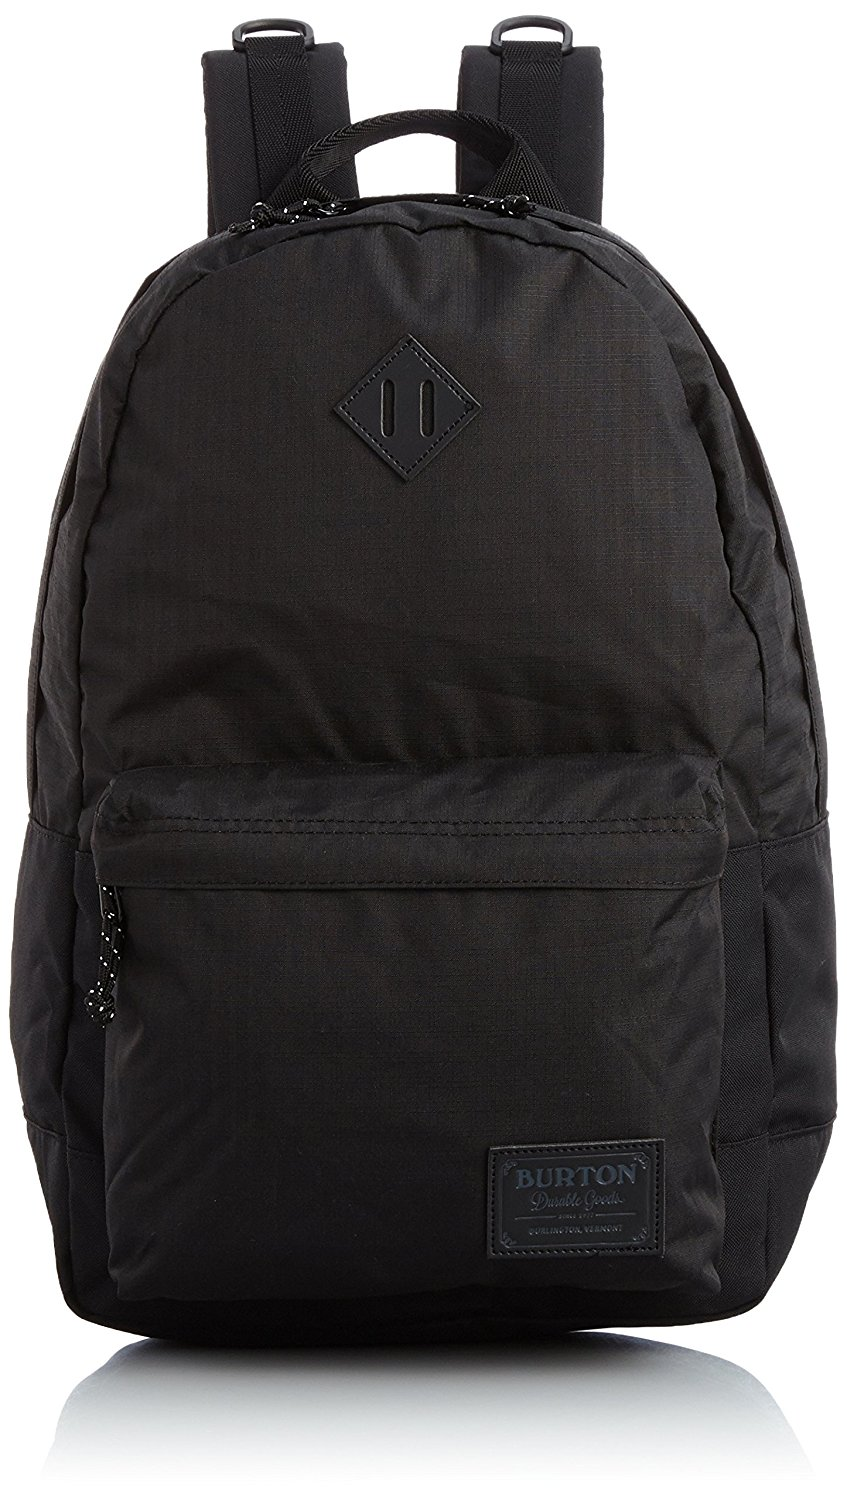 e0736f9cb59d9 Get Quotations · Burton Kettle Backpack